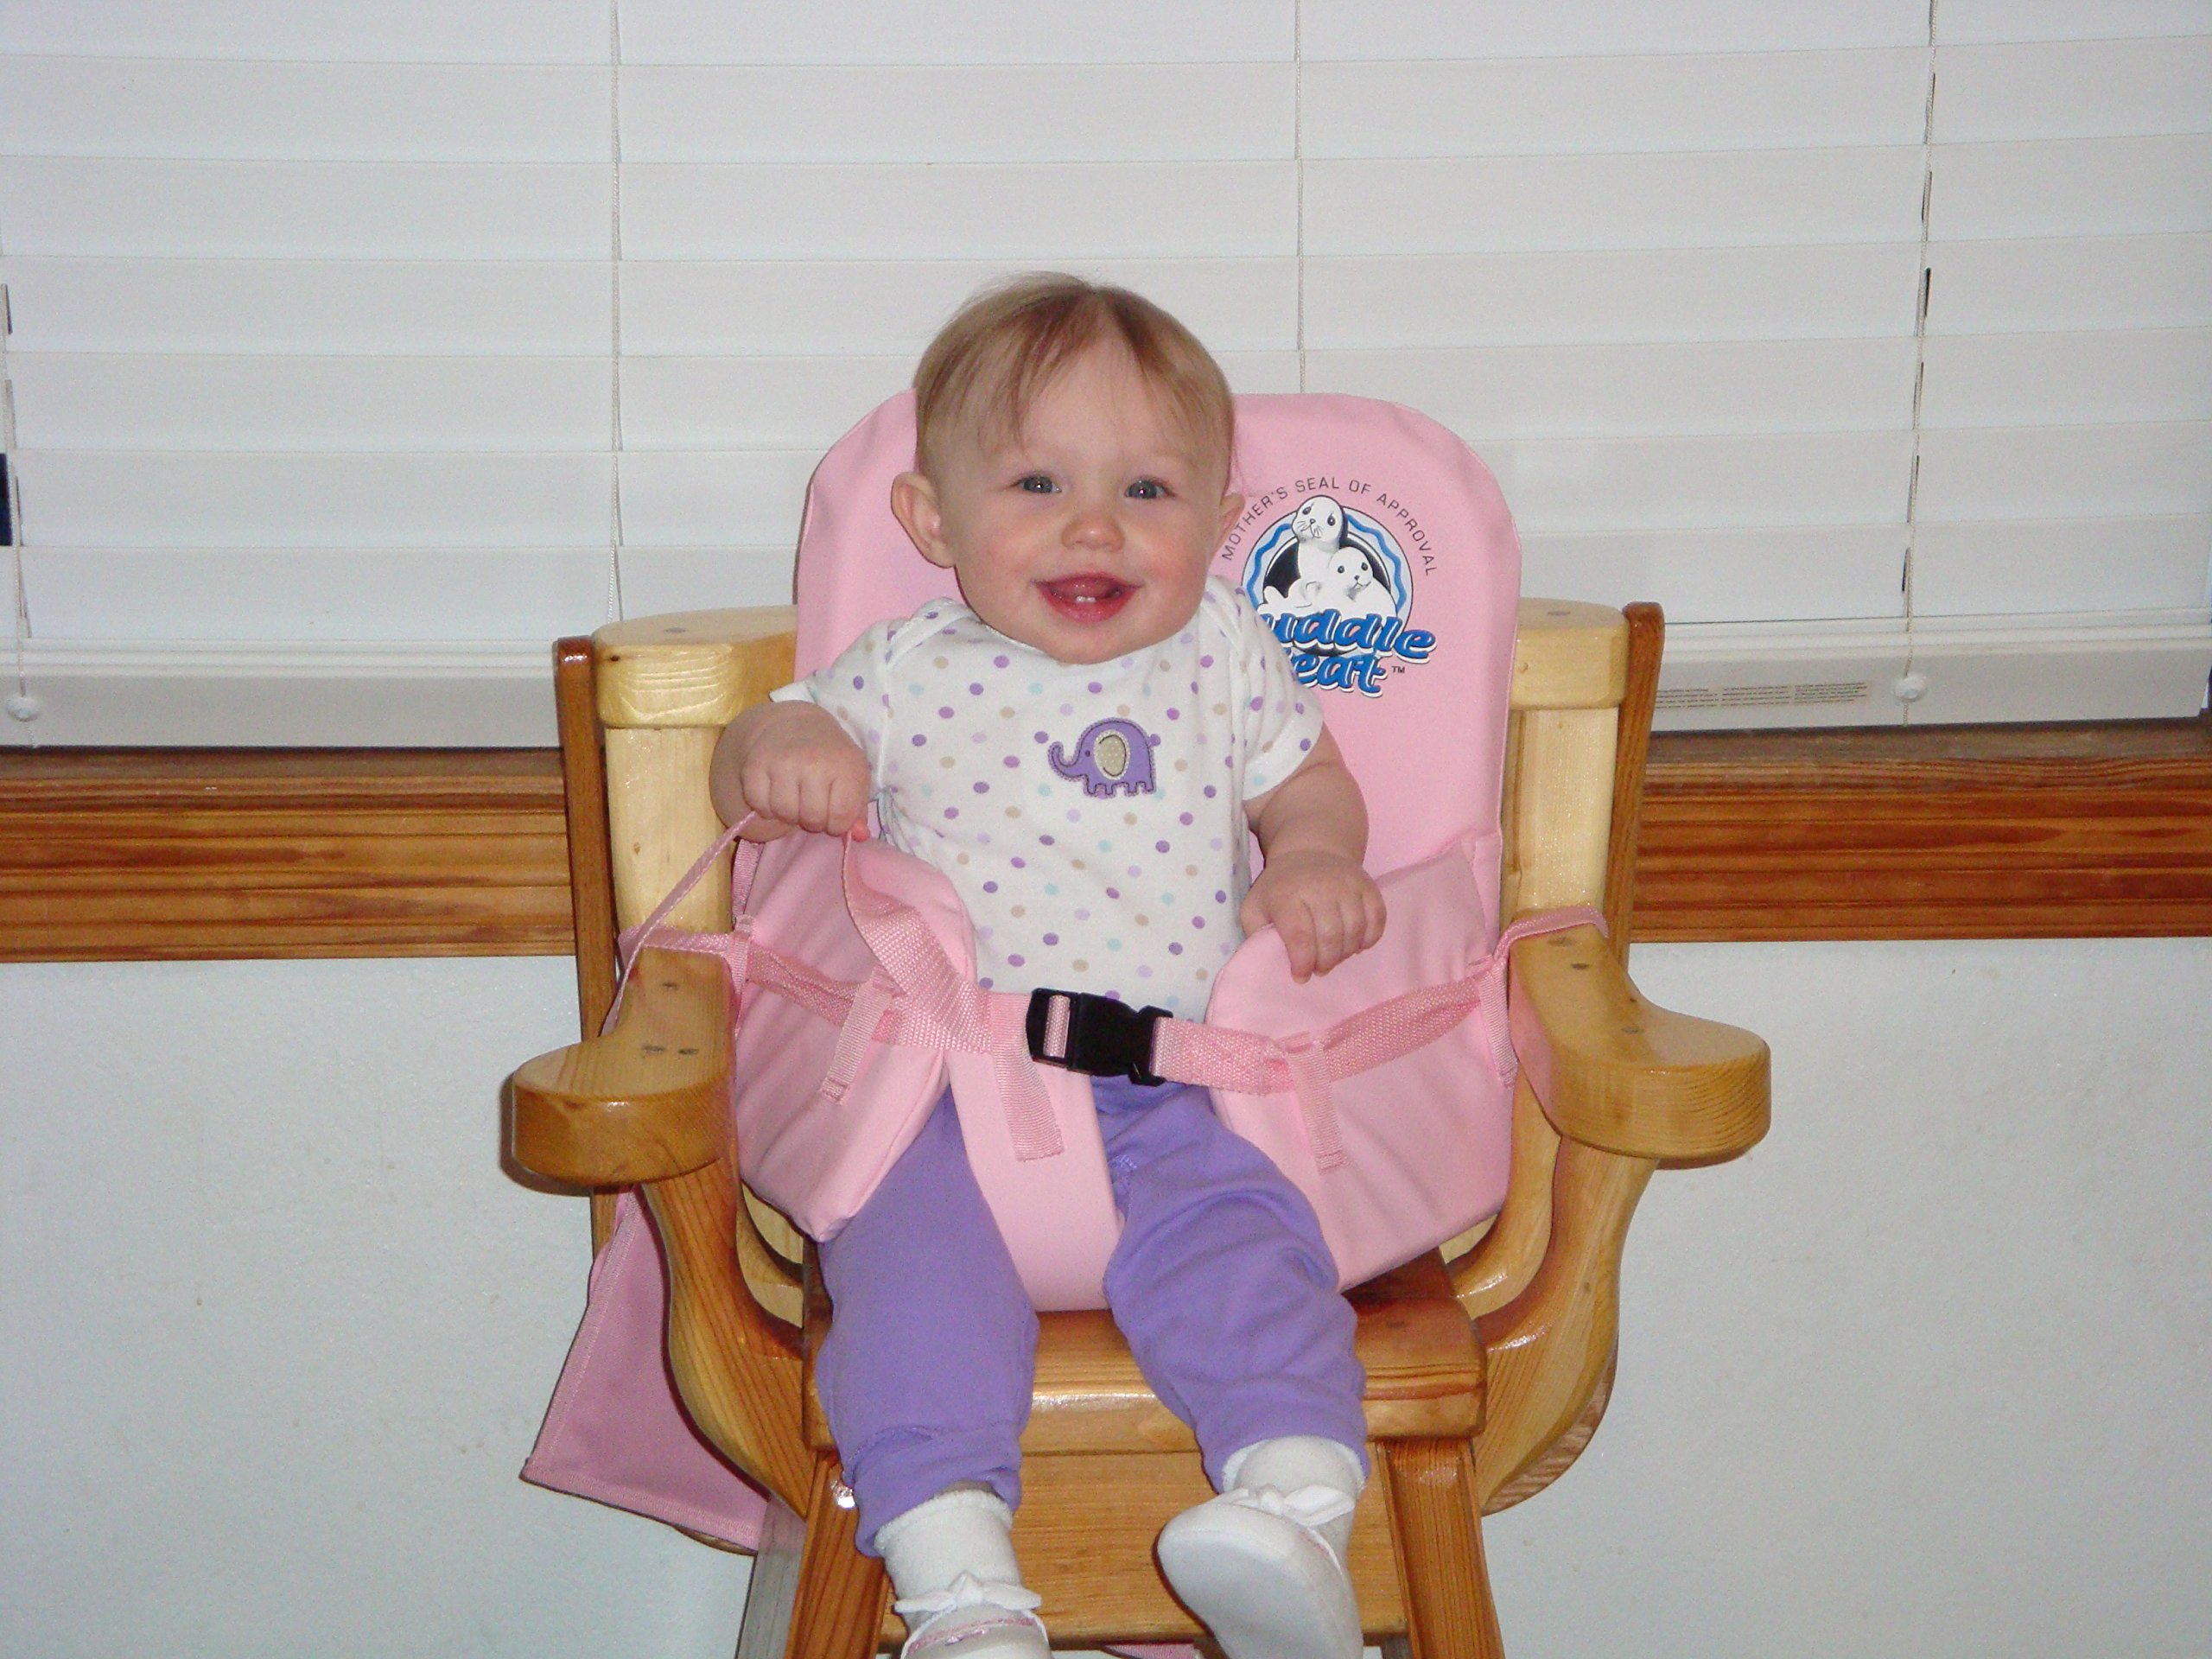 Cuddle Seat Infant and Toddler Highchair Safety Seat in Blue or Pink New Buy 1 Get 1 FREE